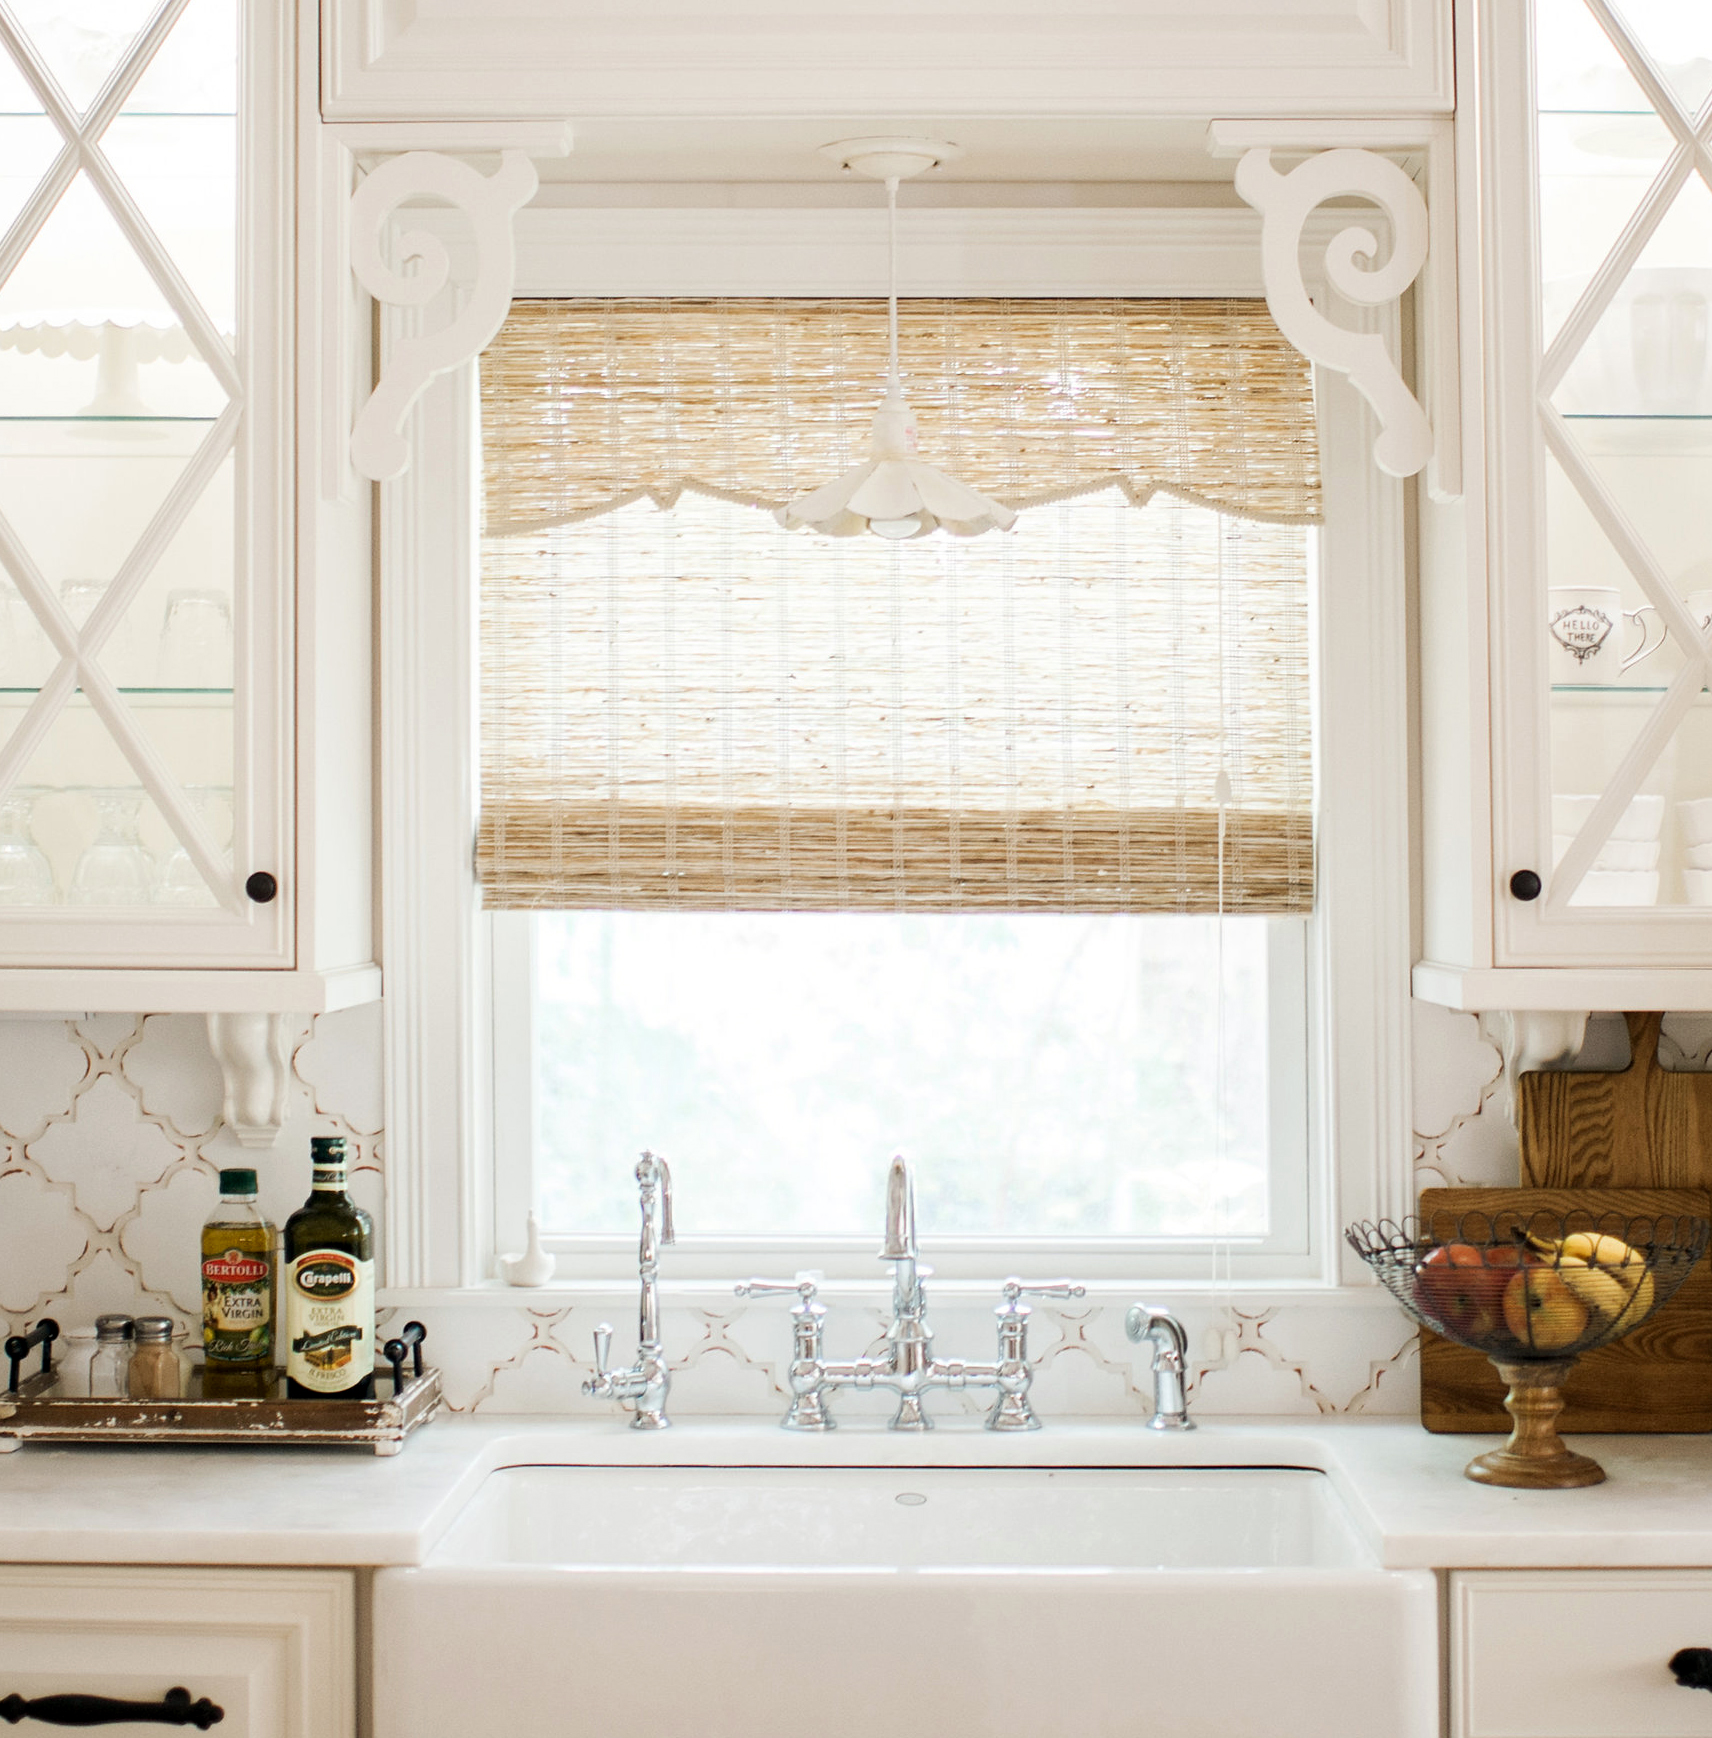 Pendant Light Over Kitchen Sink: » My Beach House RemodelHome Love Stories